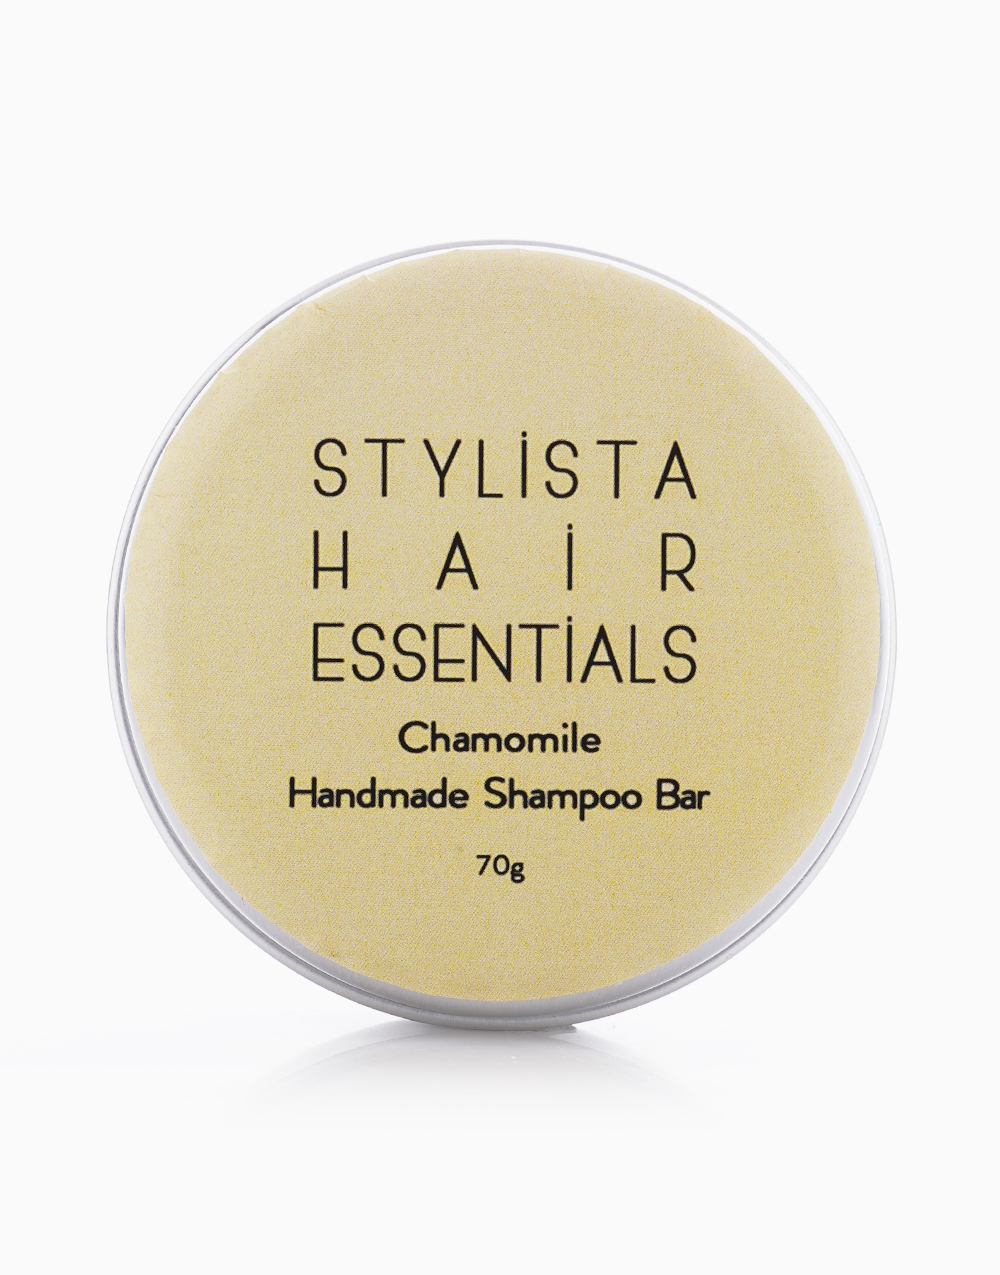 Handmade Natural Shampoo Bar in Chamomile by Stylista Hair Essentials